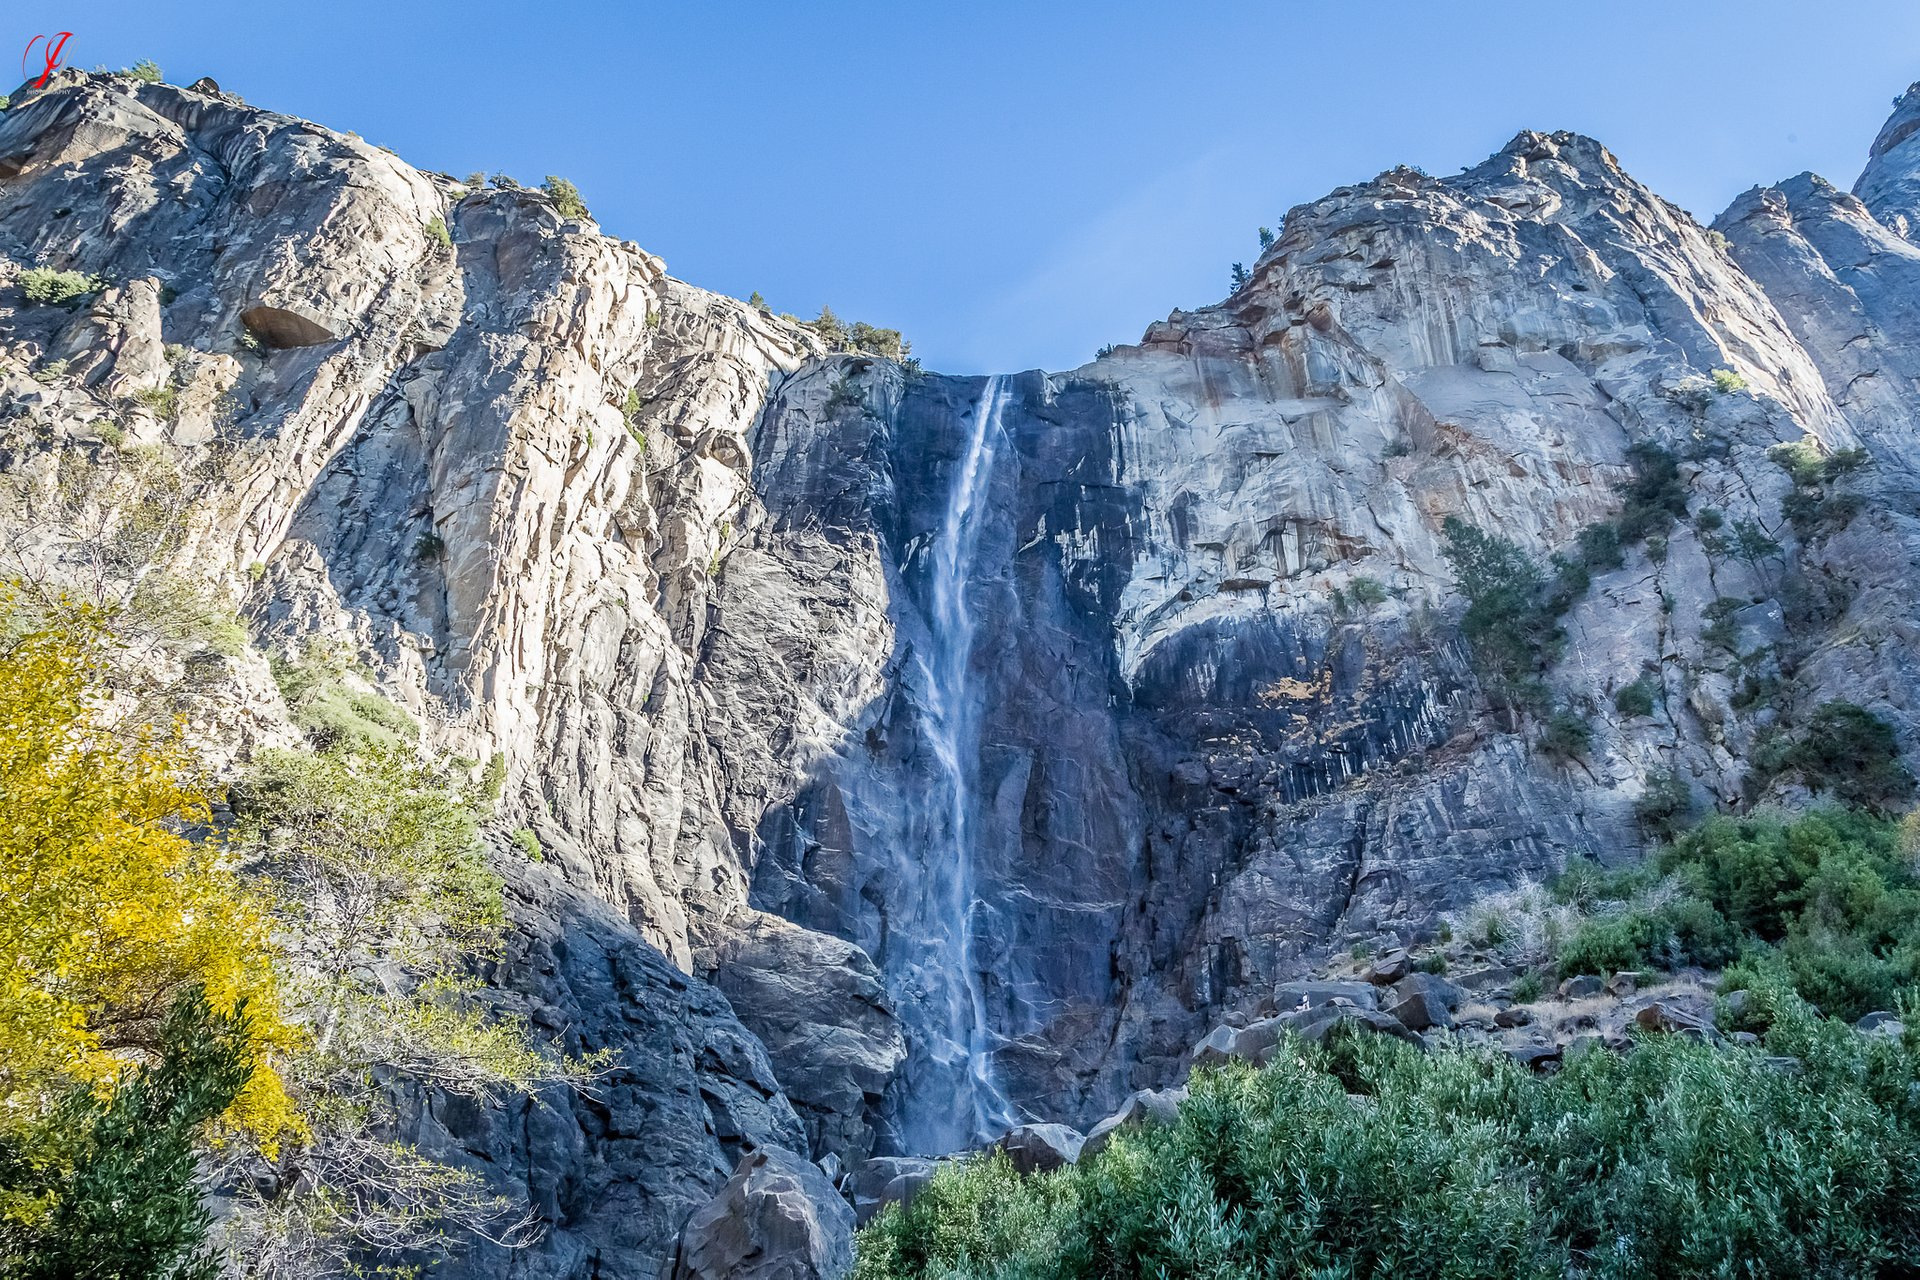 Upper Yosemite Fall 2020